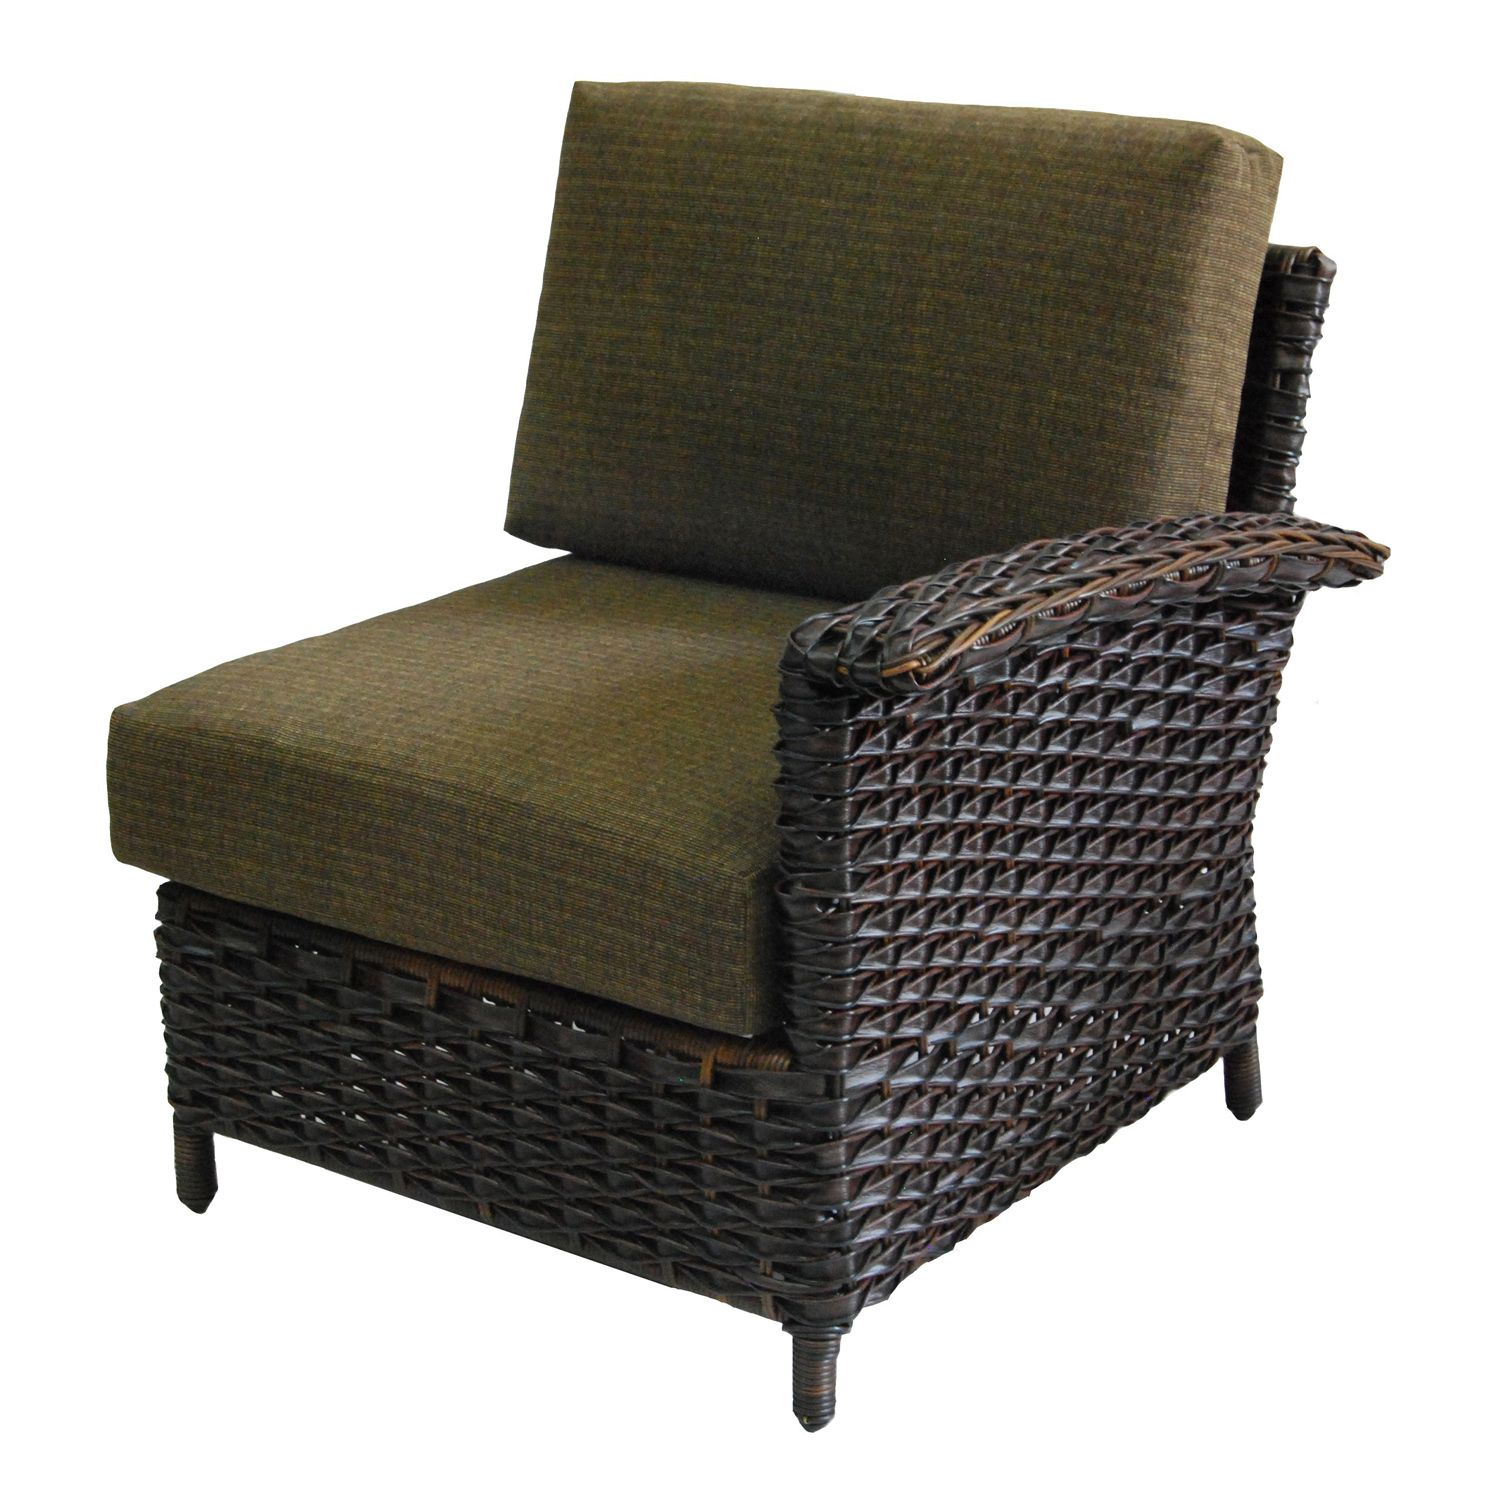 100 Kohls Chair Cushions Sonoma Goods For Life Indoor Outdo Outdoor Furniture Sets Clearance